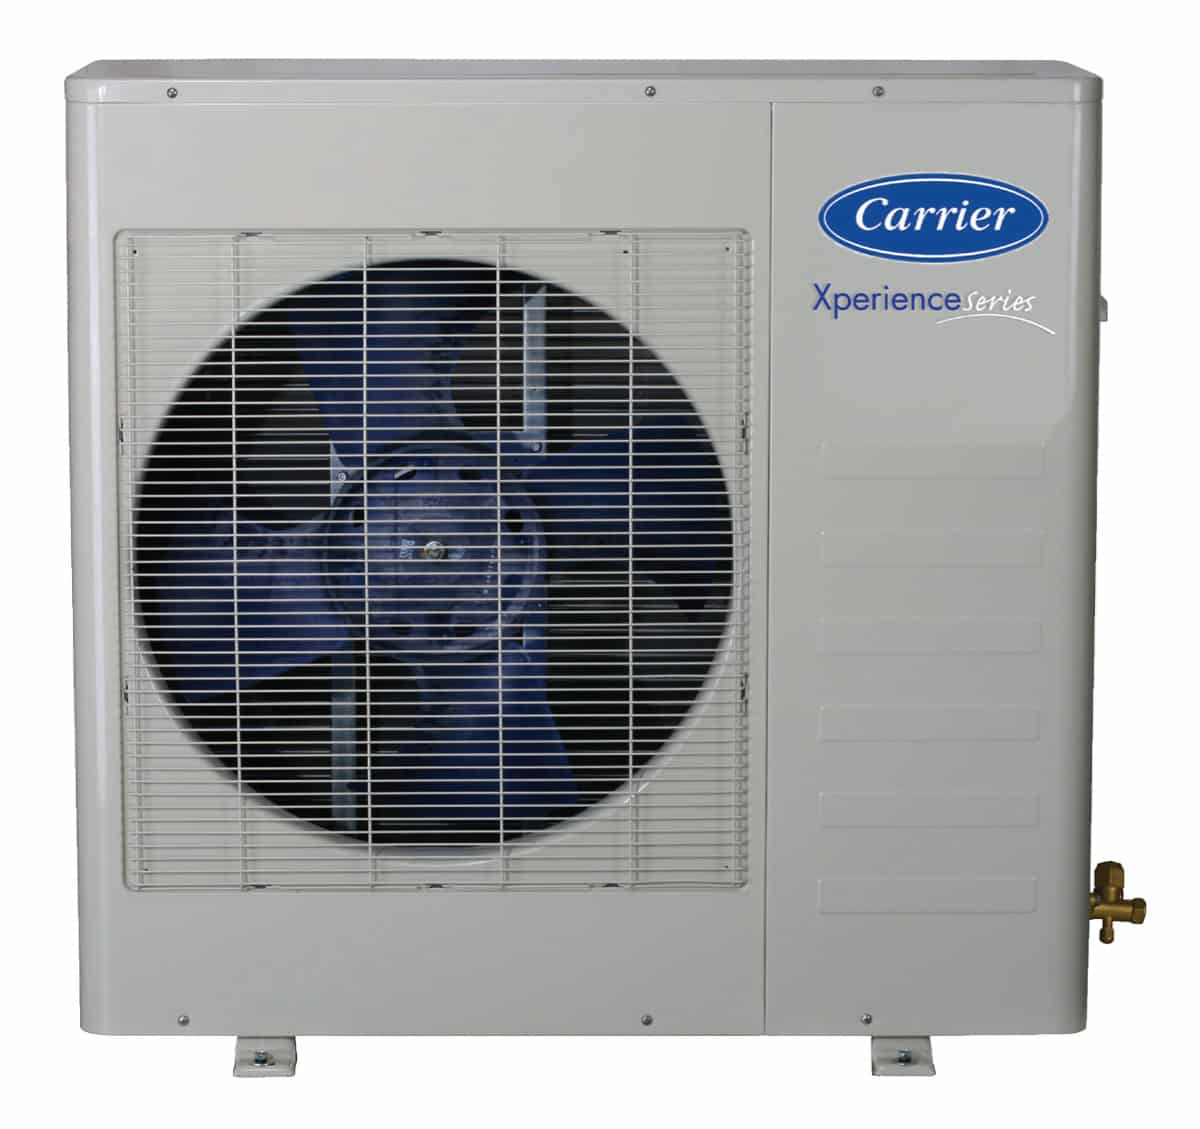 clements care air conditioning